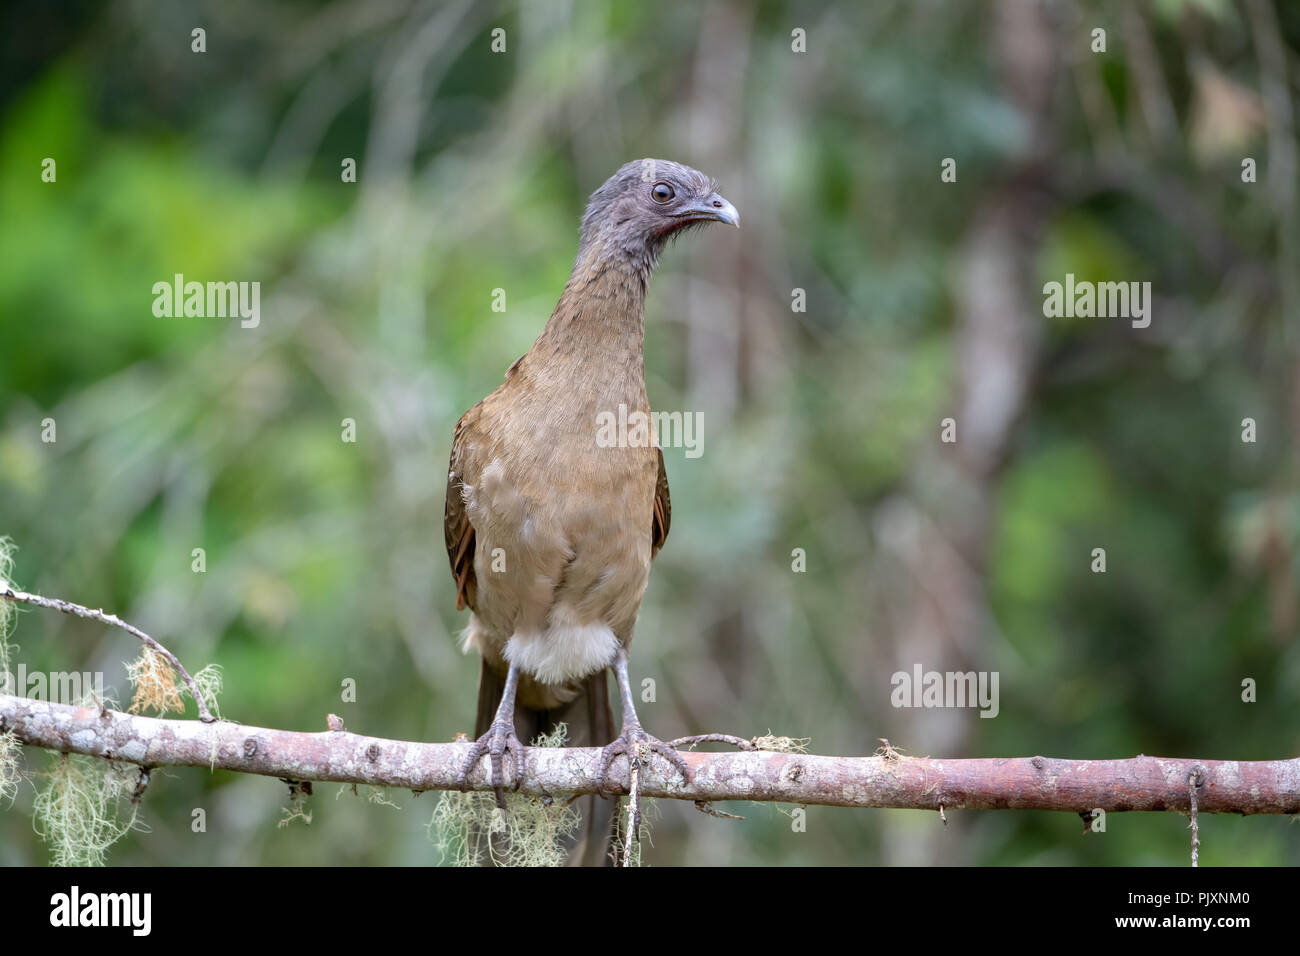 Gray-headed chachalaca (Ortalis cinereiceps) in Costa Rica - Stock Image